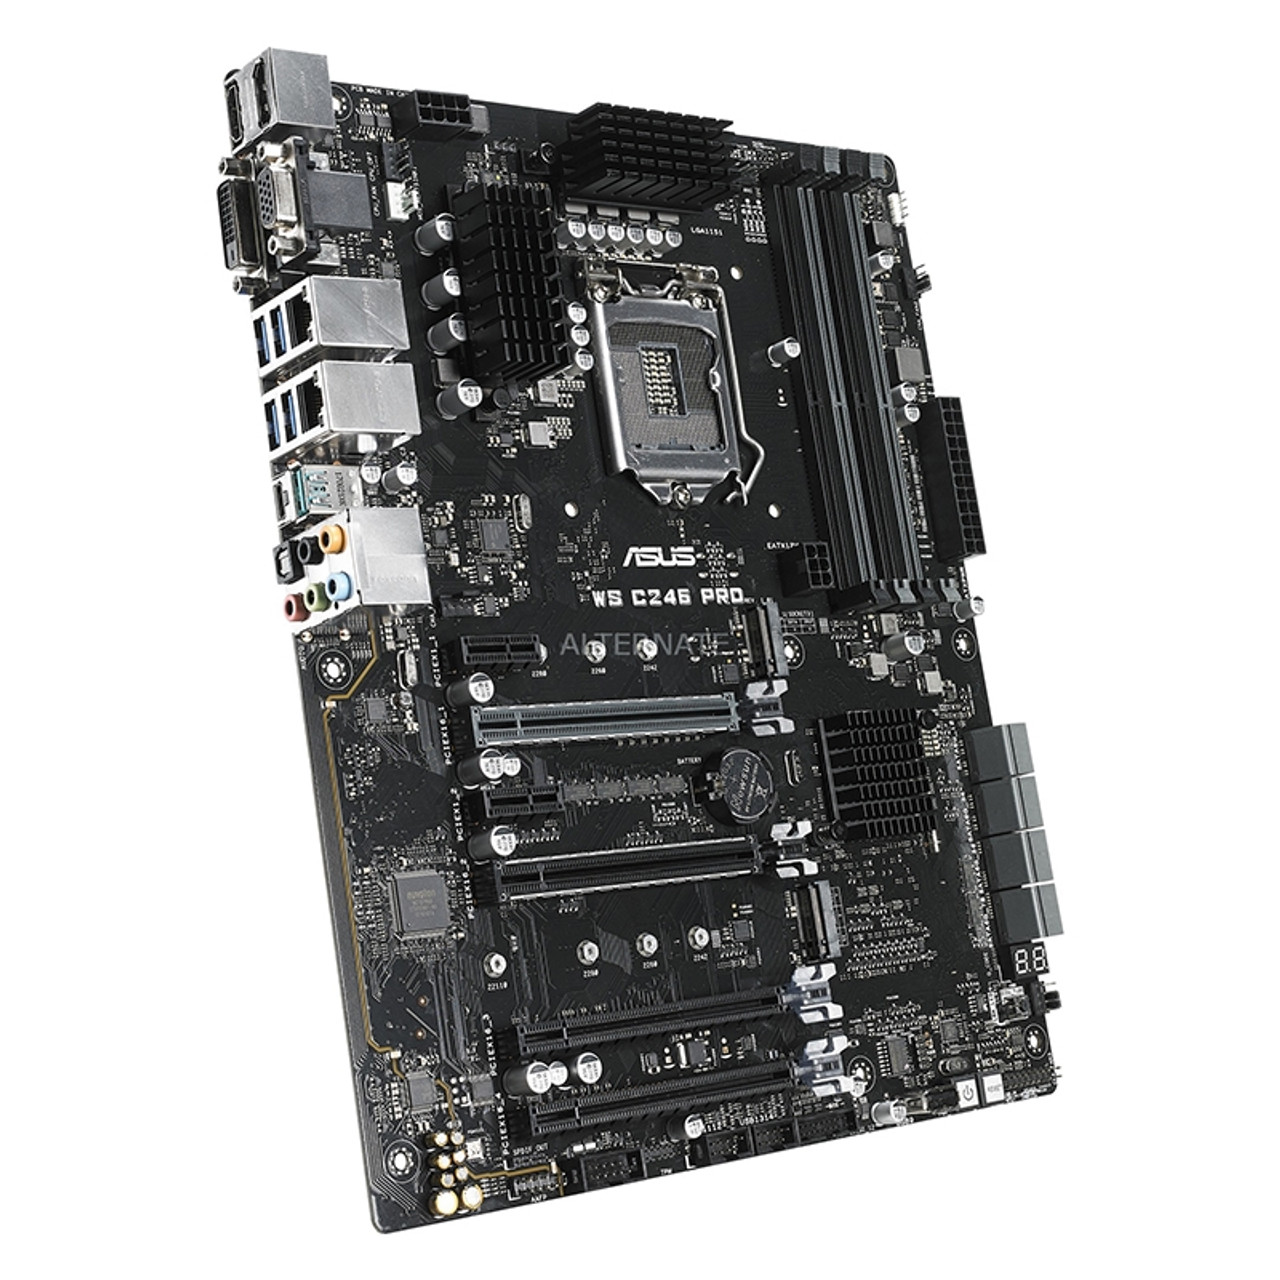 Image for Asus WS C246 PRO LGA1151 ATX Workstation Motherboard CX Computer Superstore